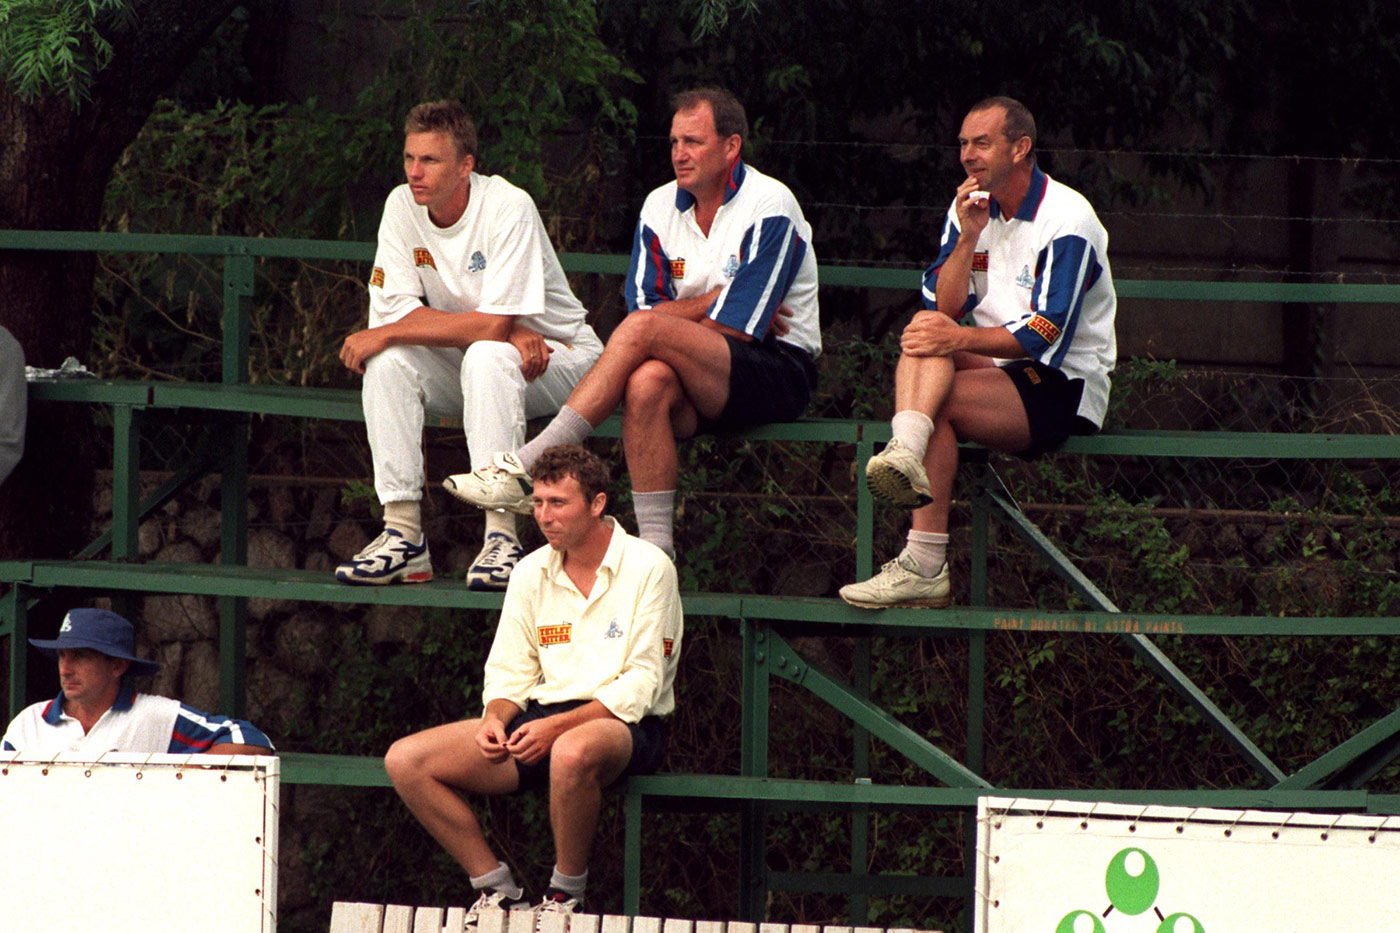 Mullally (far left, top) with fellow fishing aficionados Atherton (centre, below) and Lloyd (far right) on the sidelines of a Bulawayo tour match in 1996